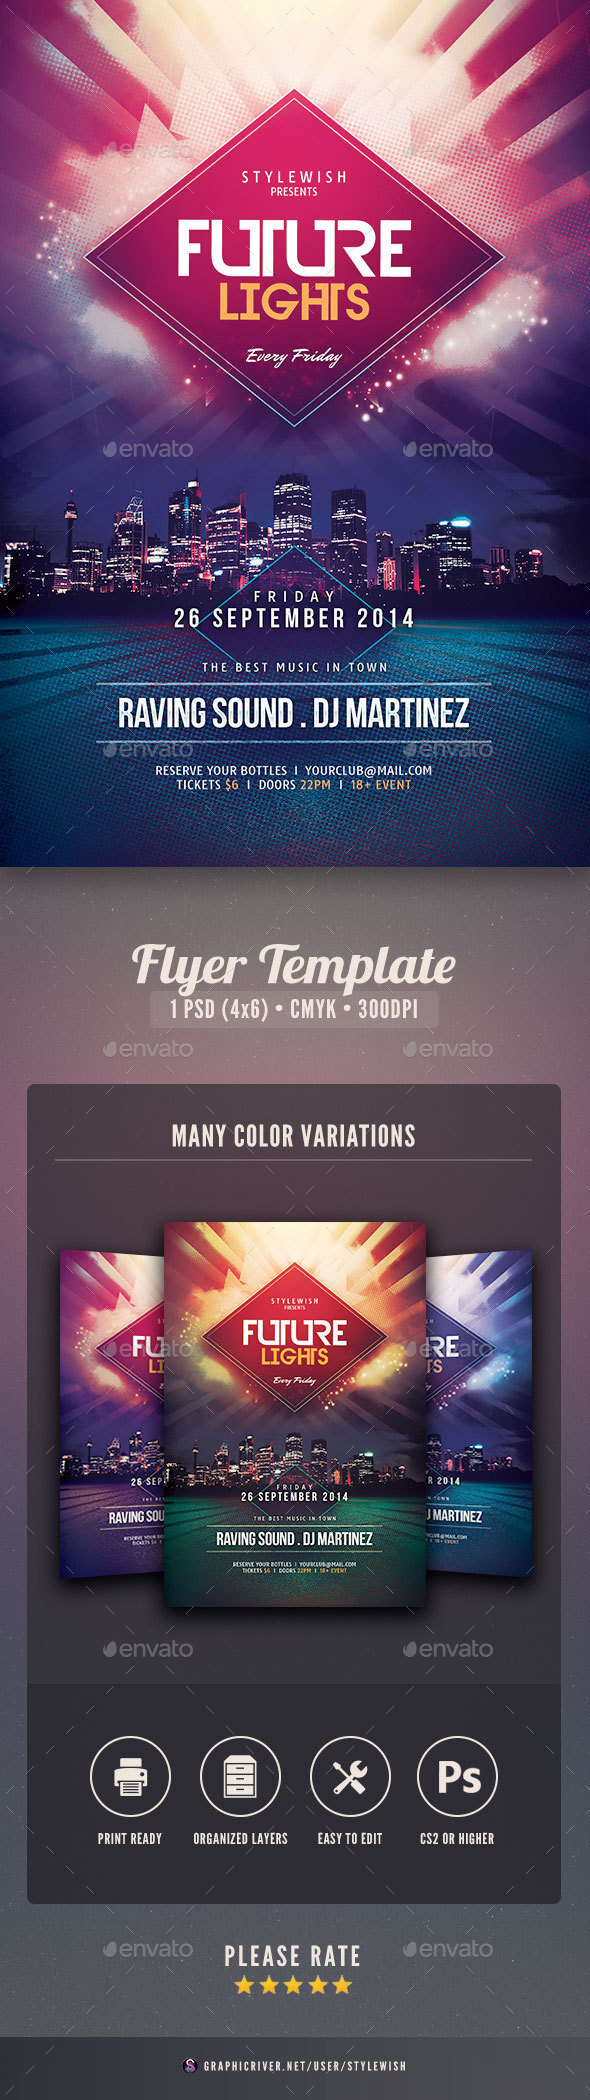 Future Lights Flyer - Clubs & Parties Events